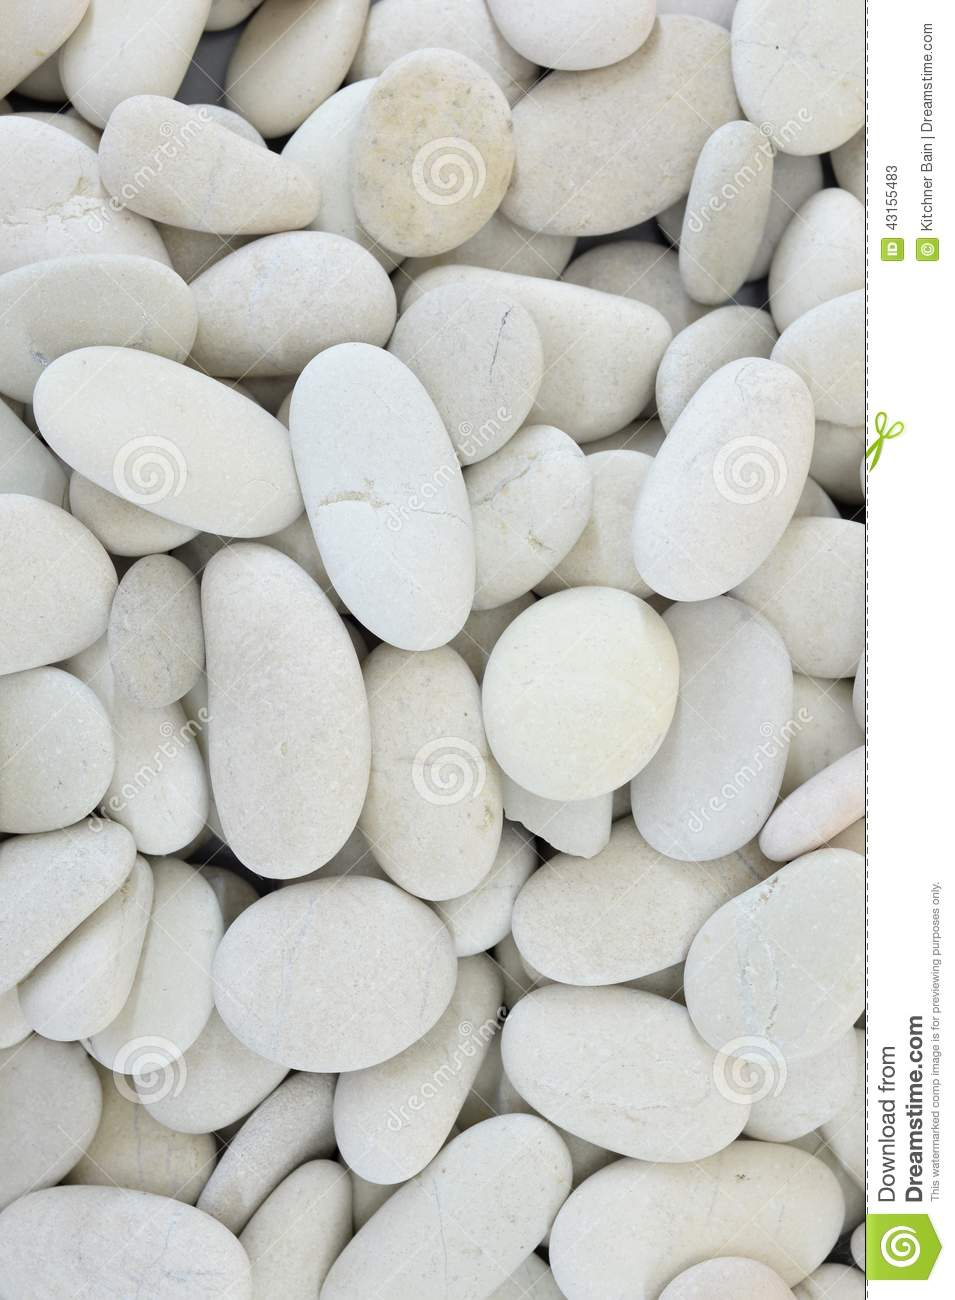 White River Rocks stock image. Image of nature b7a72a70c